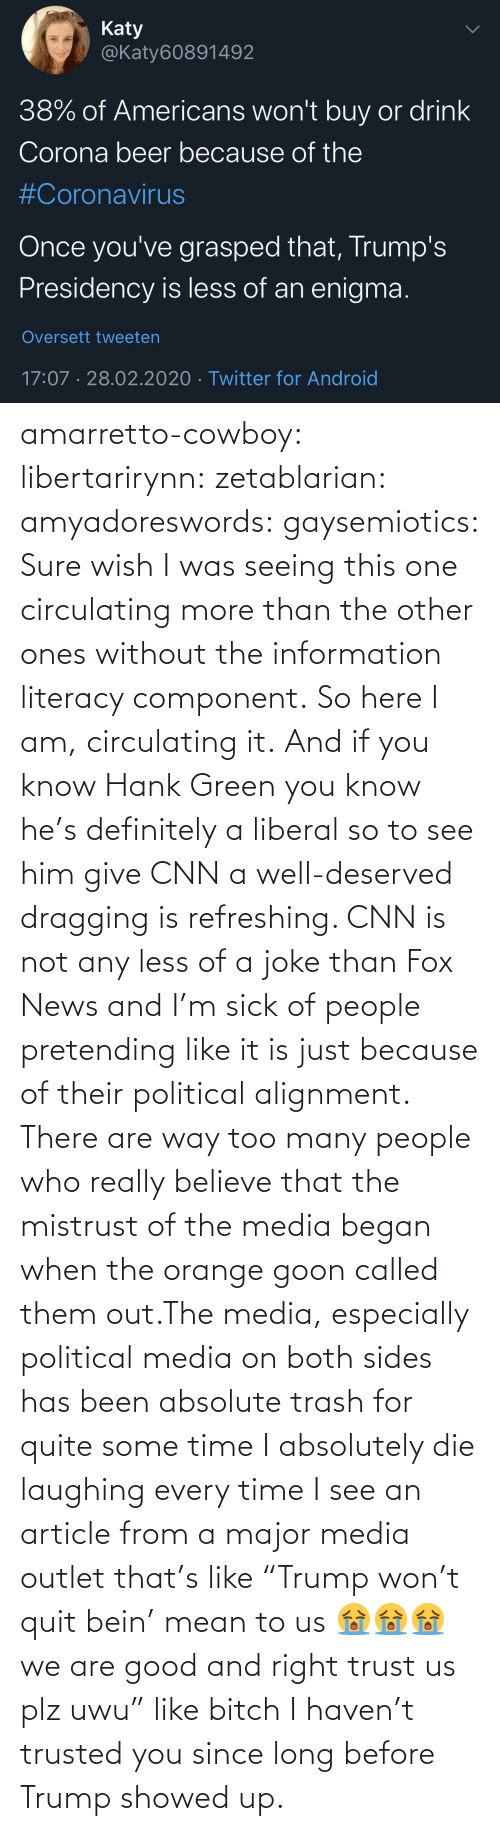 "Like It: amarretto-cowboy:  libertarirynn:  zetablarian:  amyadoreswords:   gaysemiotics:       Sure wish I was seeing this one circulating more than the other ones without the information literacy component. So here I am, circulating it.    And if you know Hank Green you know he's definitely a liberal so to see him give CNN a well-deserved dragging is refreshing. CNN is not any less of a joke than Fox News and I'm sick of people pretending like it is just because of their political alignment.   There are way too many people who really believe that the mistrust of the media began when the orange goon called them out.The media, especially political media on both sides has been absolute trash for quite some time   I absolutely die laughing every time I see an article from a major media outlet that's like ""Trump won't quit bein' mean to us 😭😭😭 we are good and right trust us plz uwu"" like bitch I haven't trusted you since long before Trump showed up."